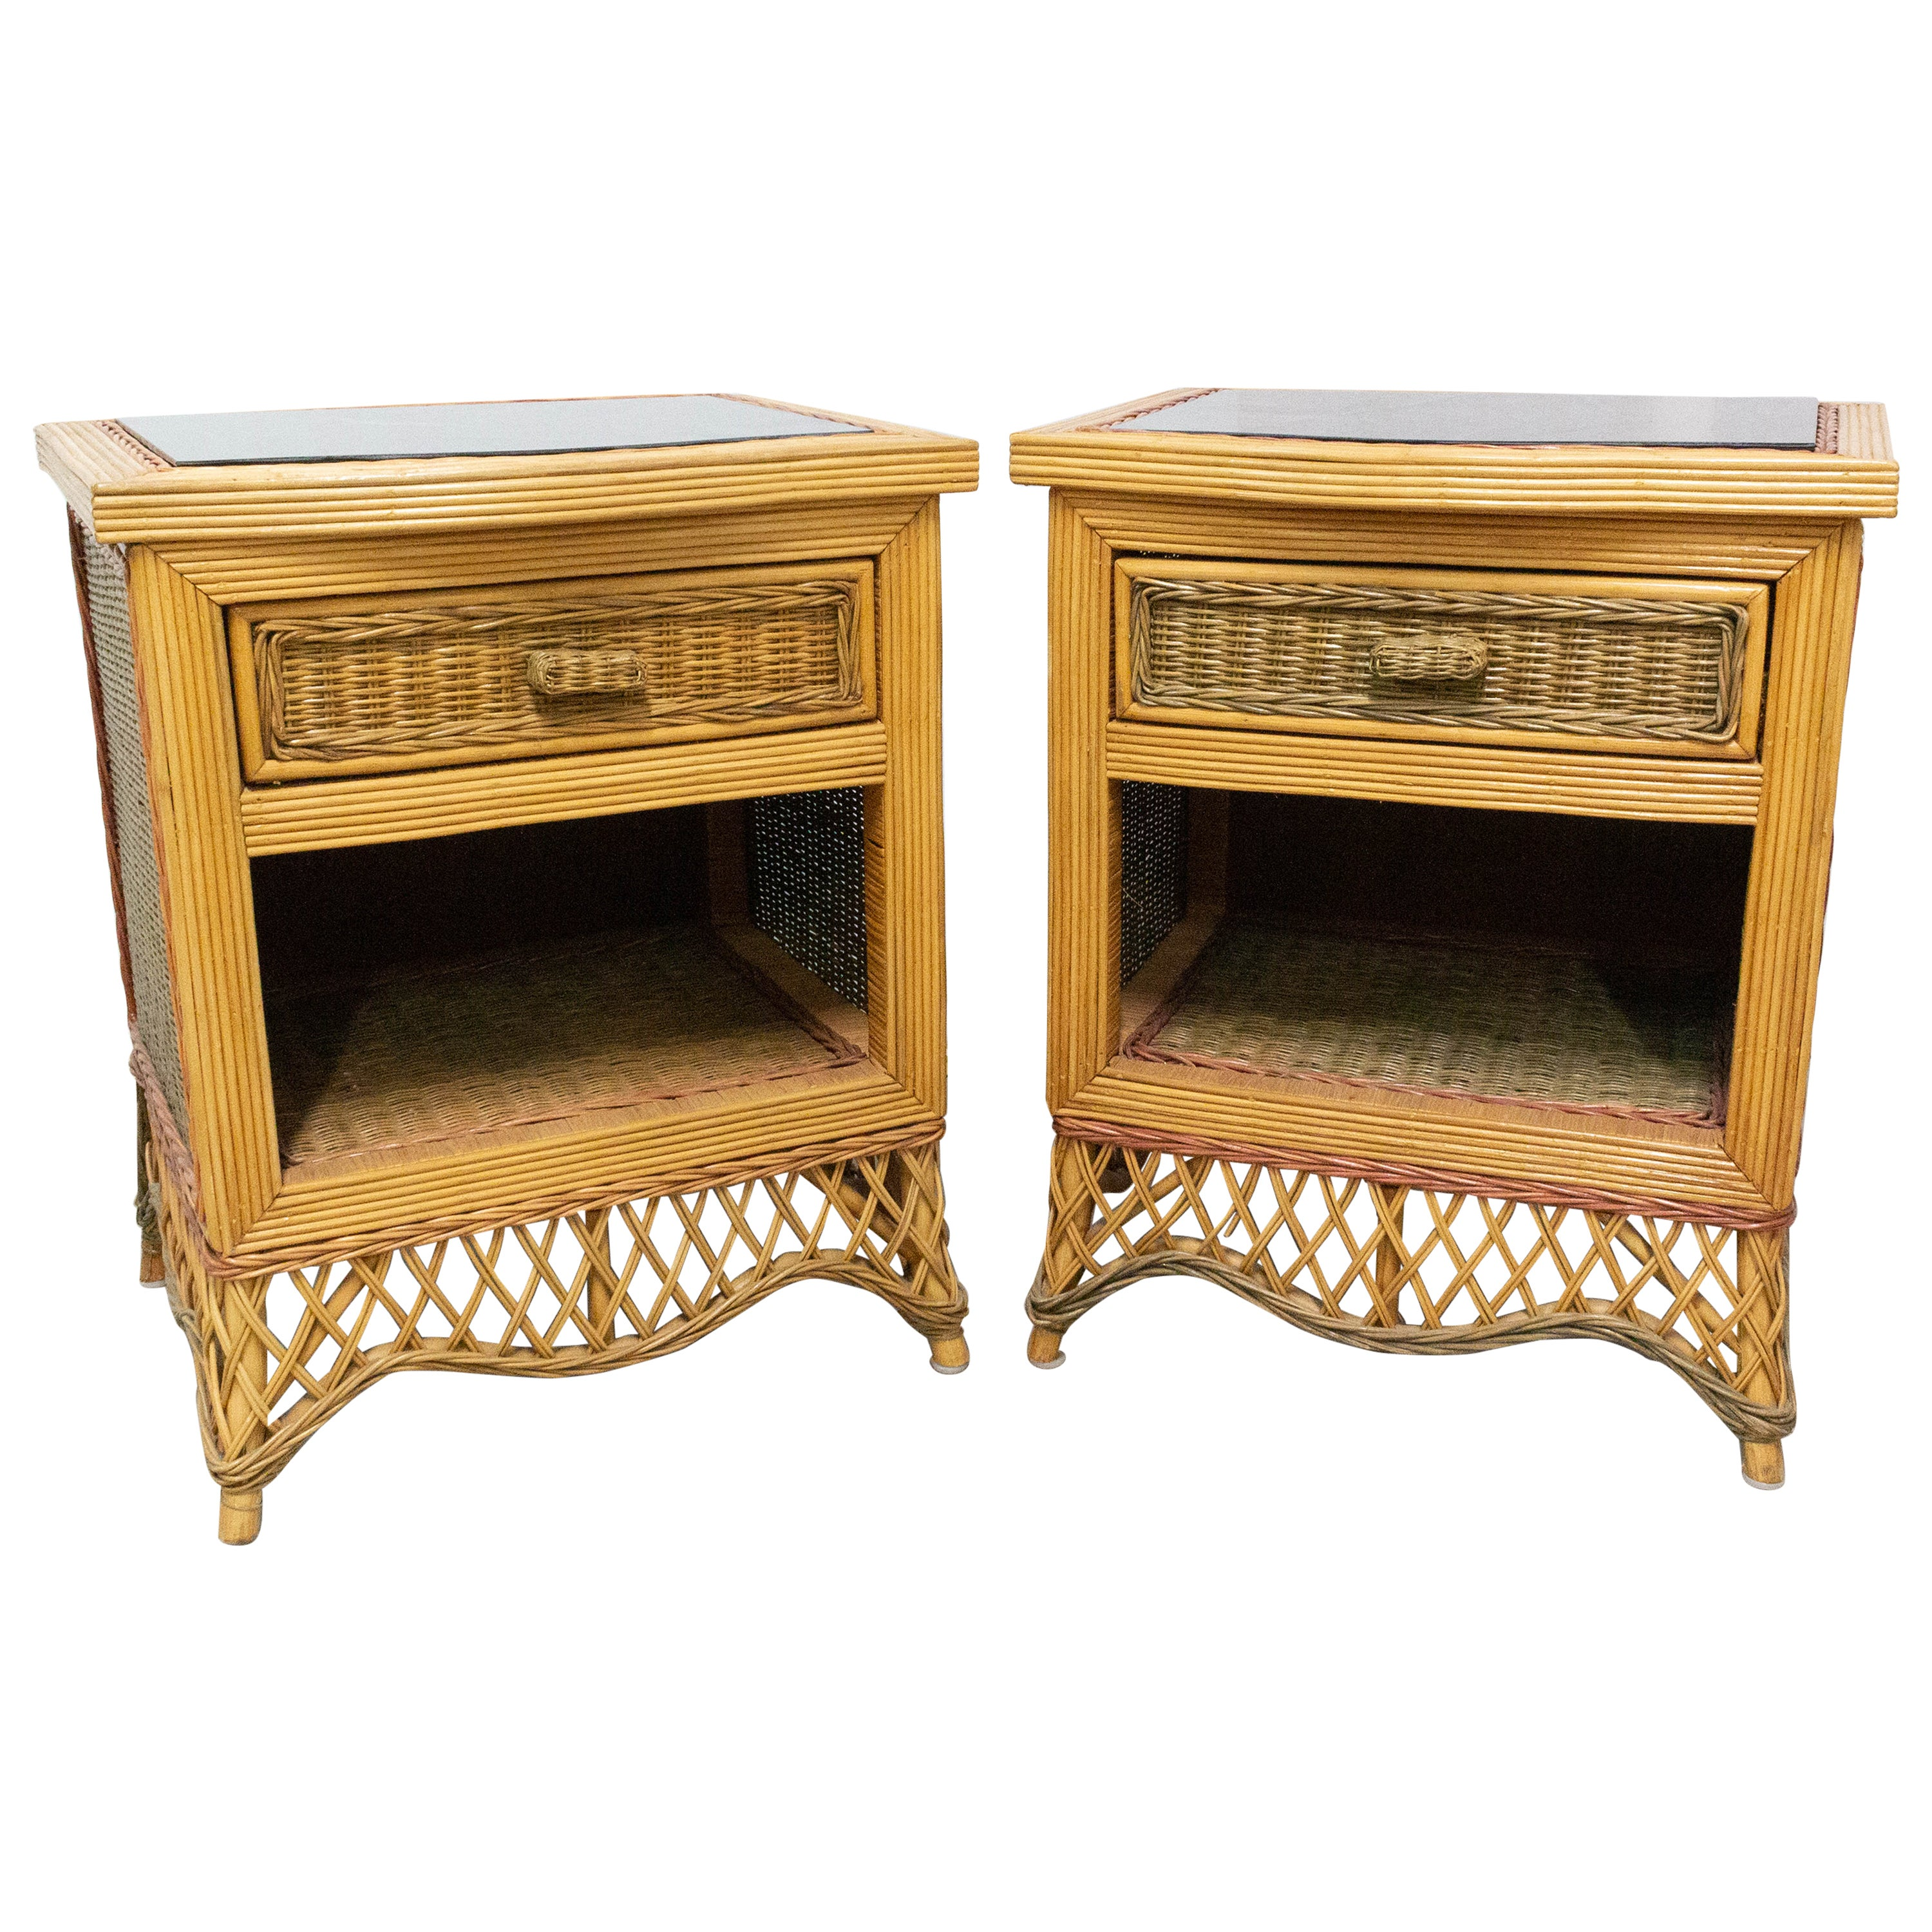 Pair of Rattan Nightstands Mirror Top Side Cabinets Bedside Tables, French